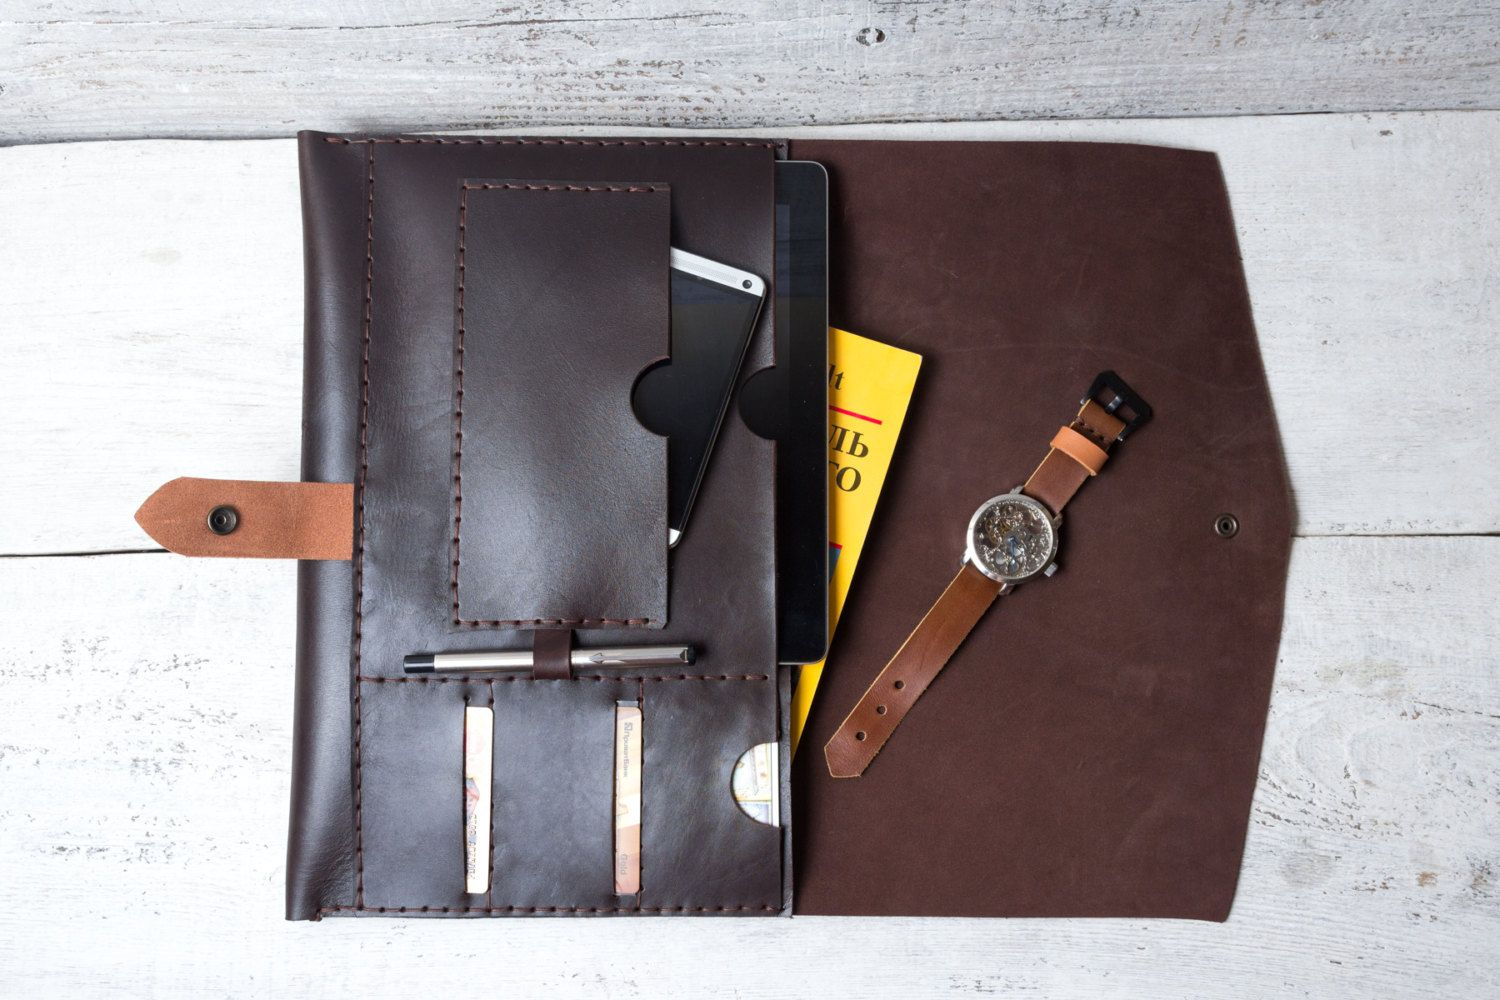 Macbook 13 Pro / Air portfolio organizer case. Made from full grain deep brown color leather. by viveo on Etsy